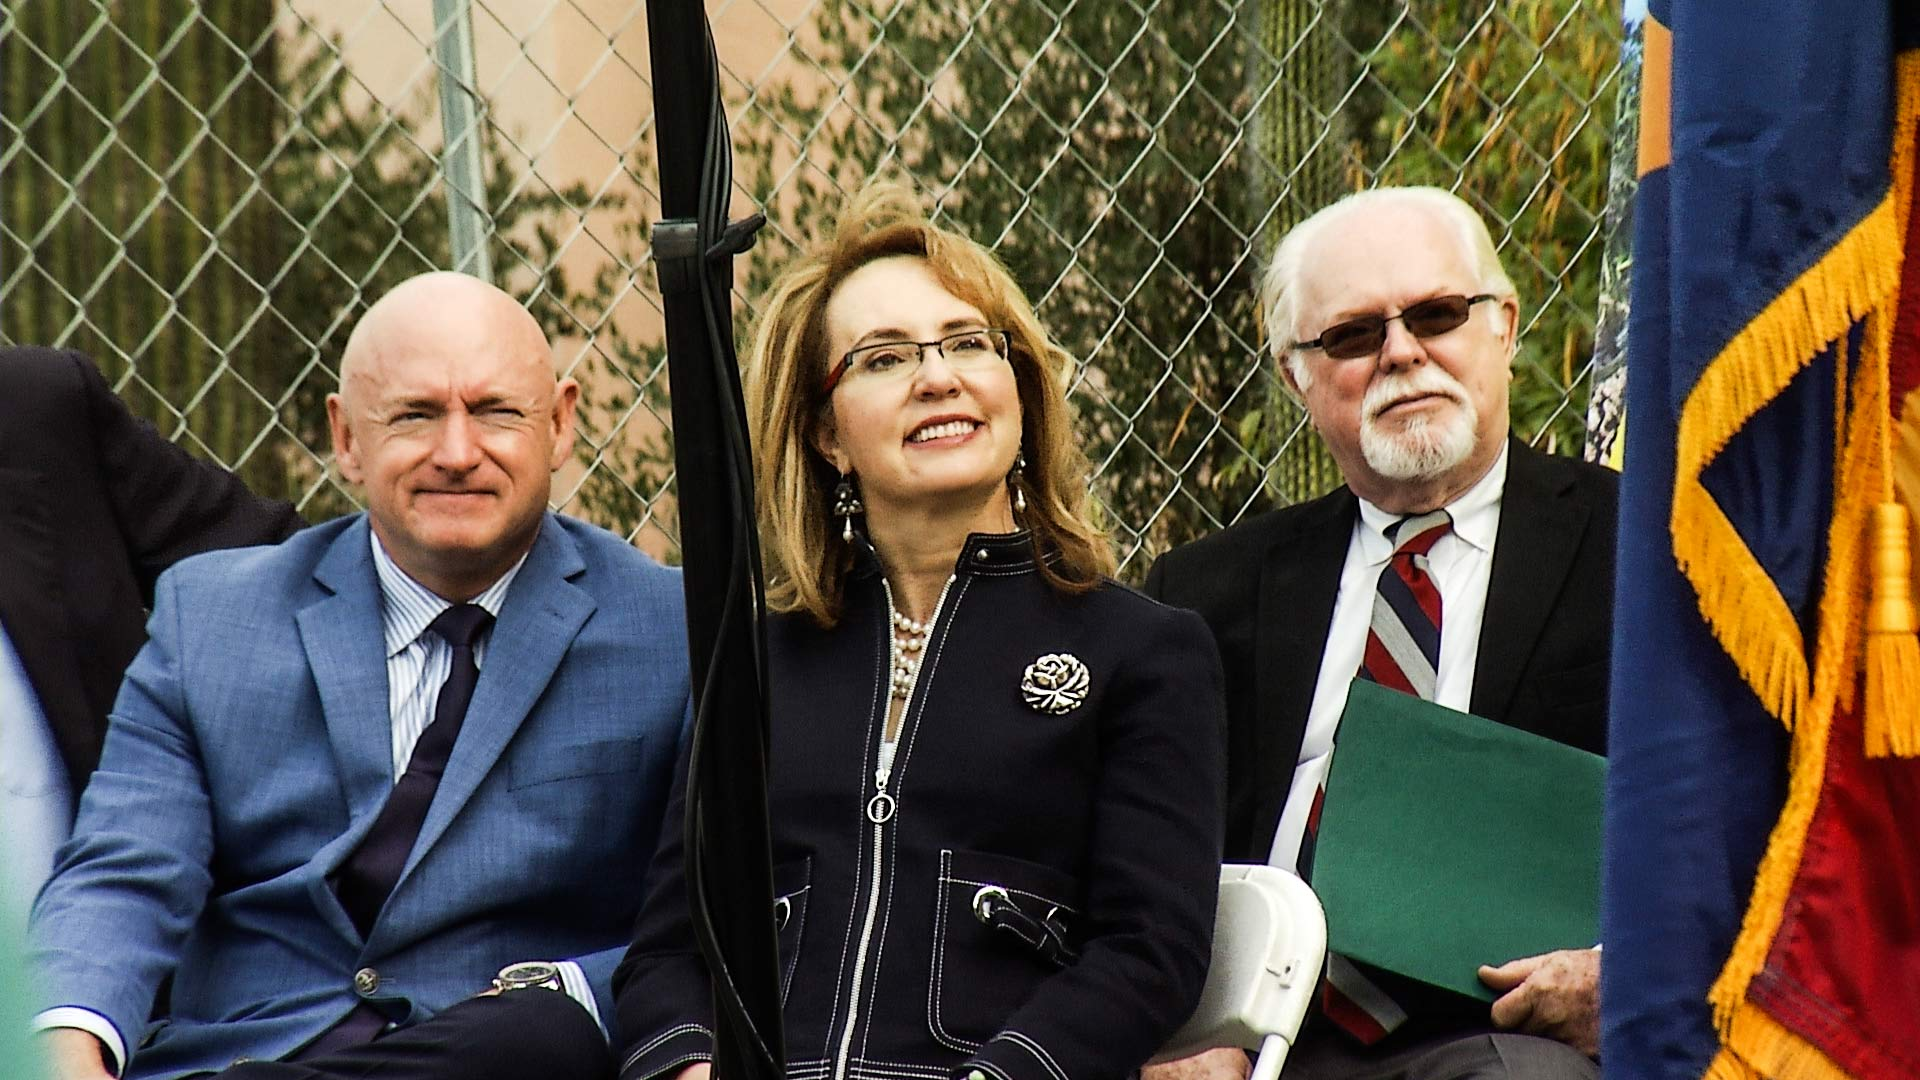 Mark Kelly, Gabrielle Giffords and Ron Barber at a memorial for the 2011 mass shooting in Tucson, Jan. 8, 2018.